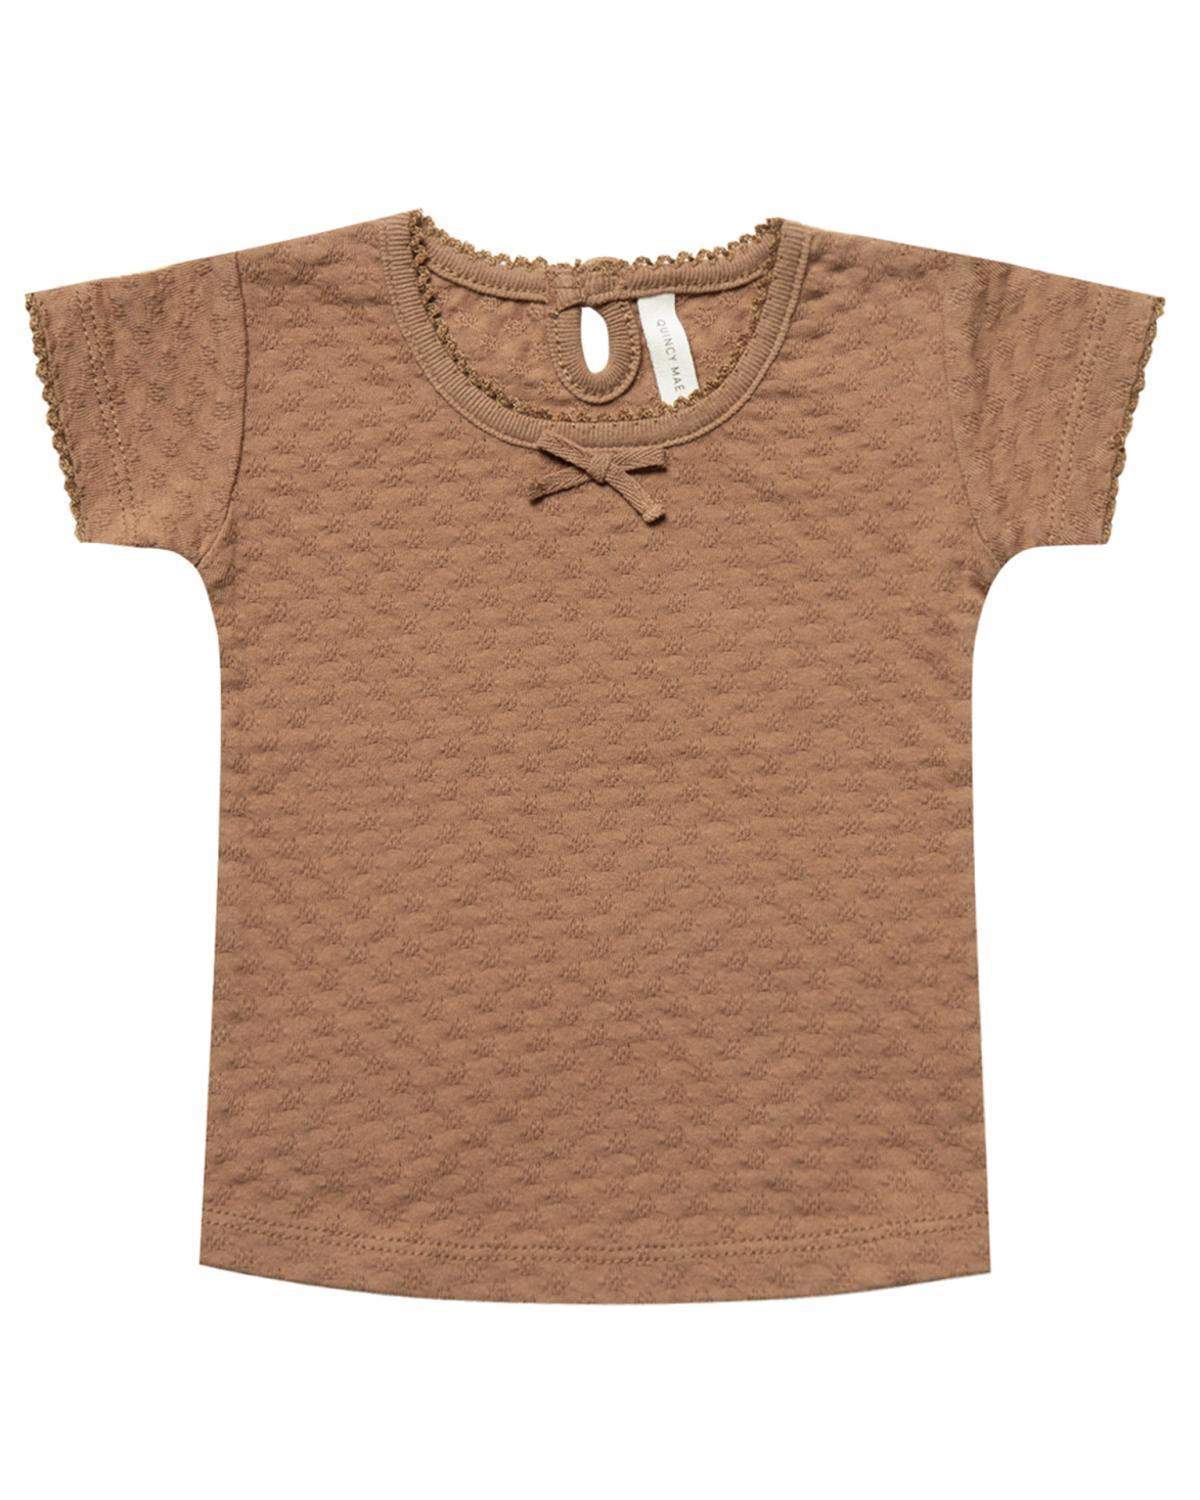 Little quincy mae baby girl 0-3 pointelle tee in copper